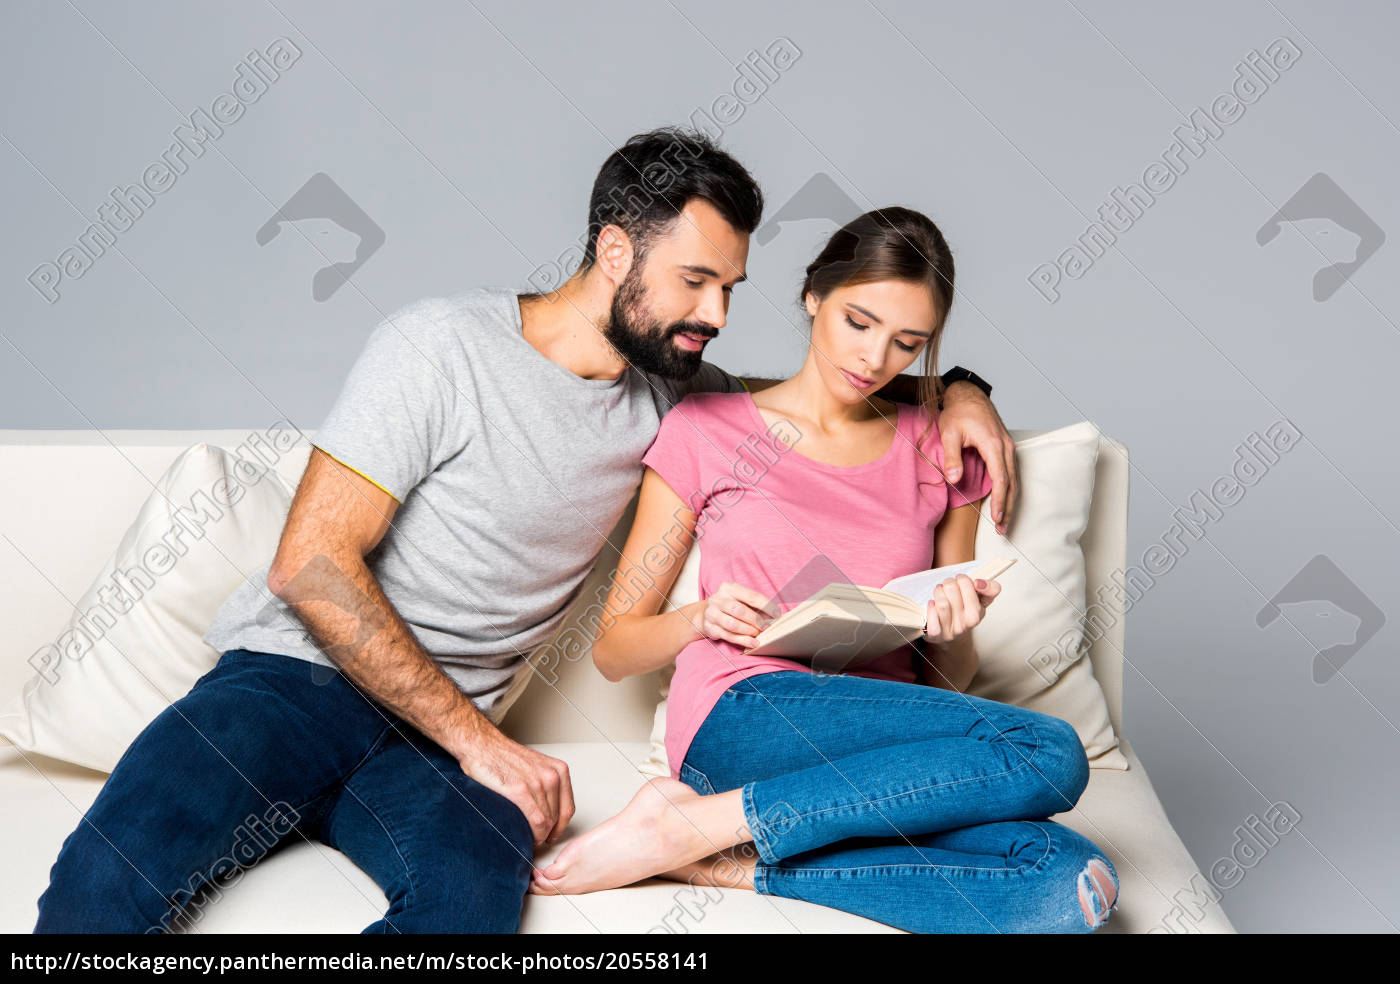 couple, reading, book - 20558141